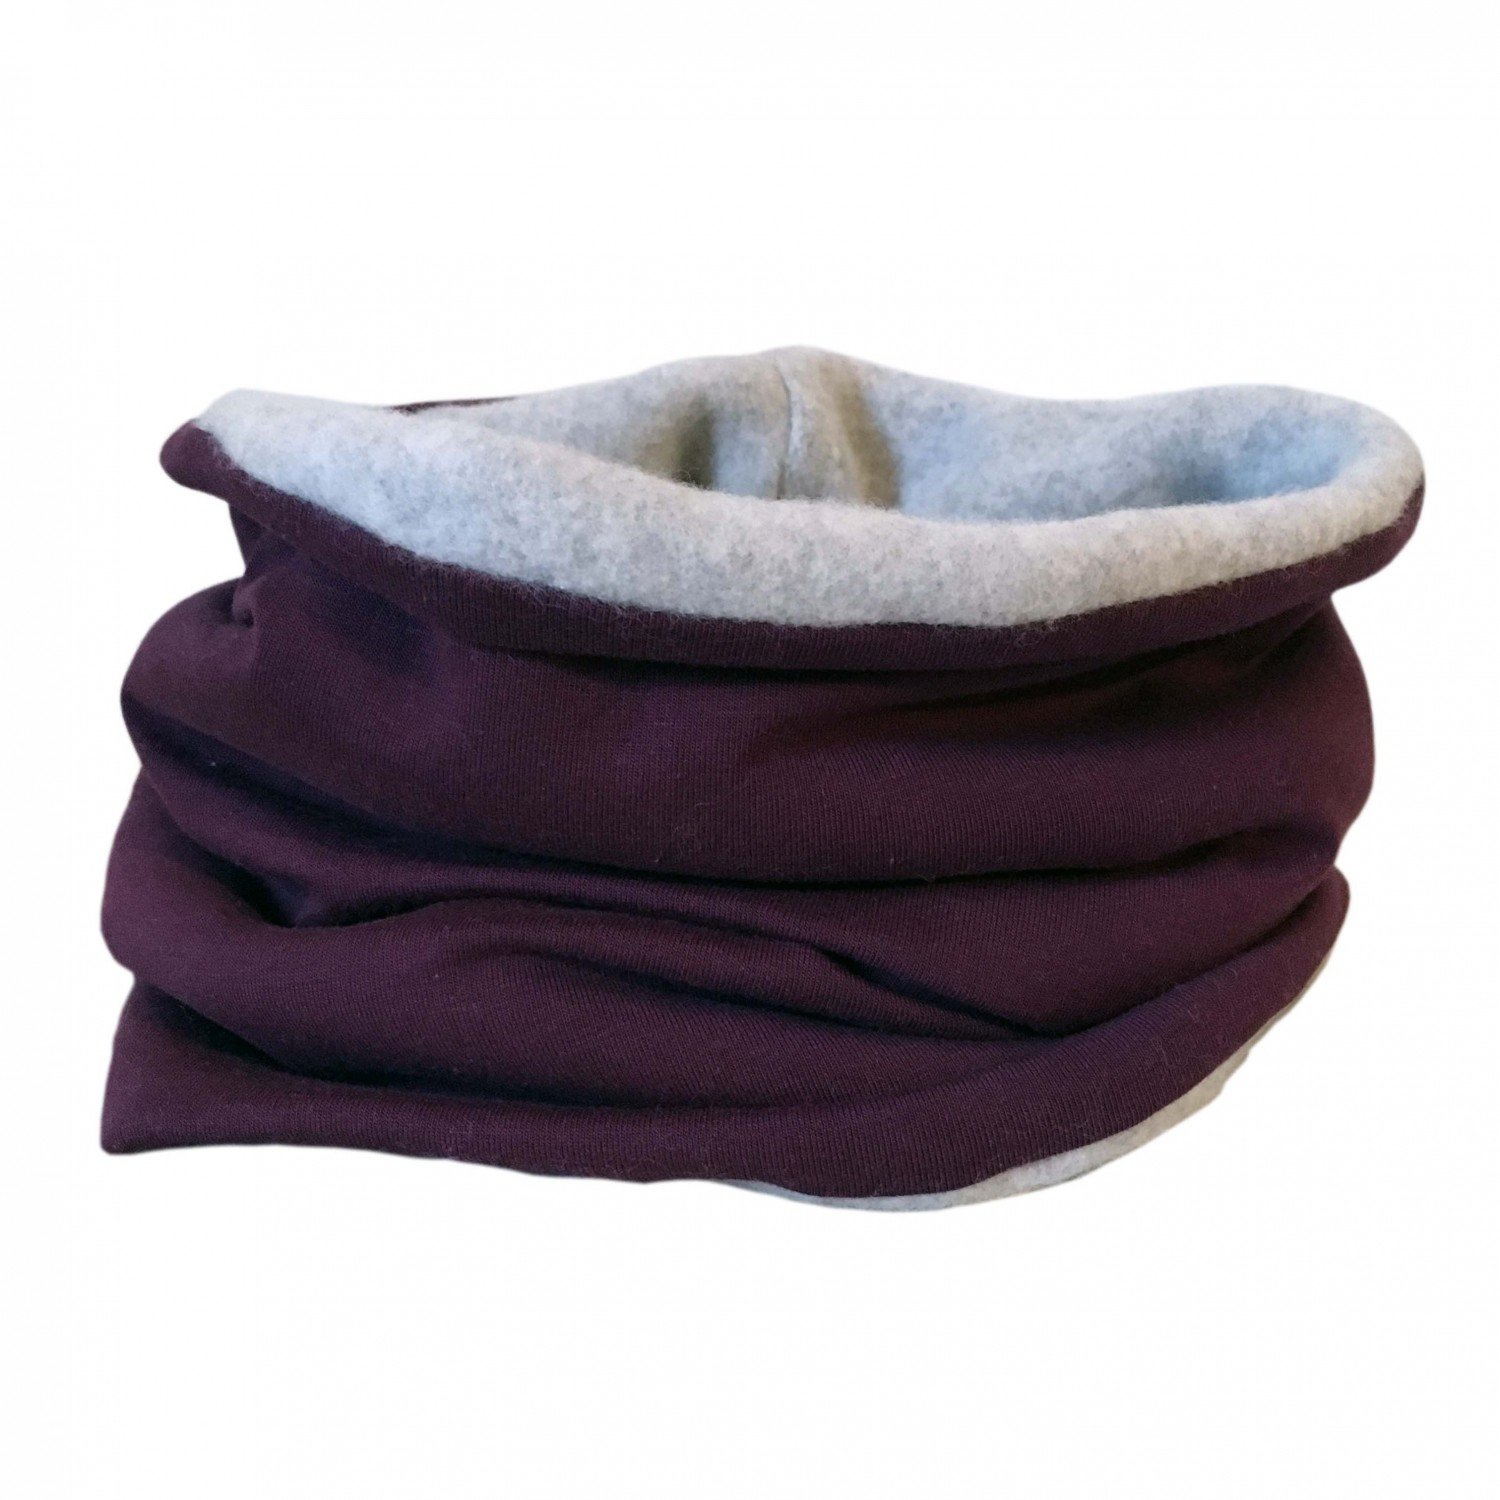 Winterproof Organic Loop Scarf aubergine/light grey | bingabonga